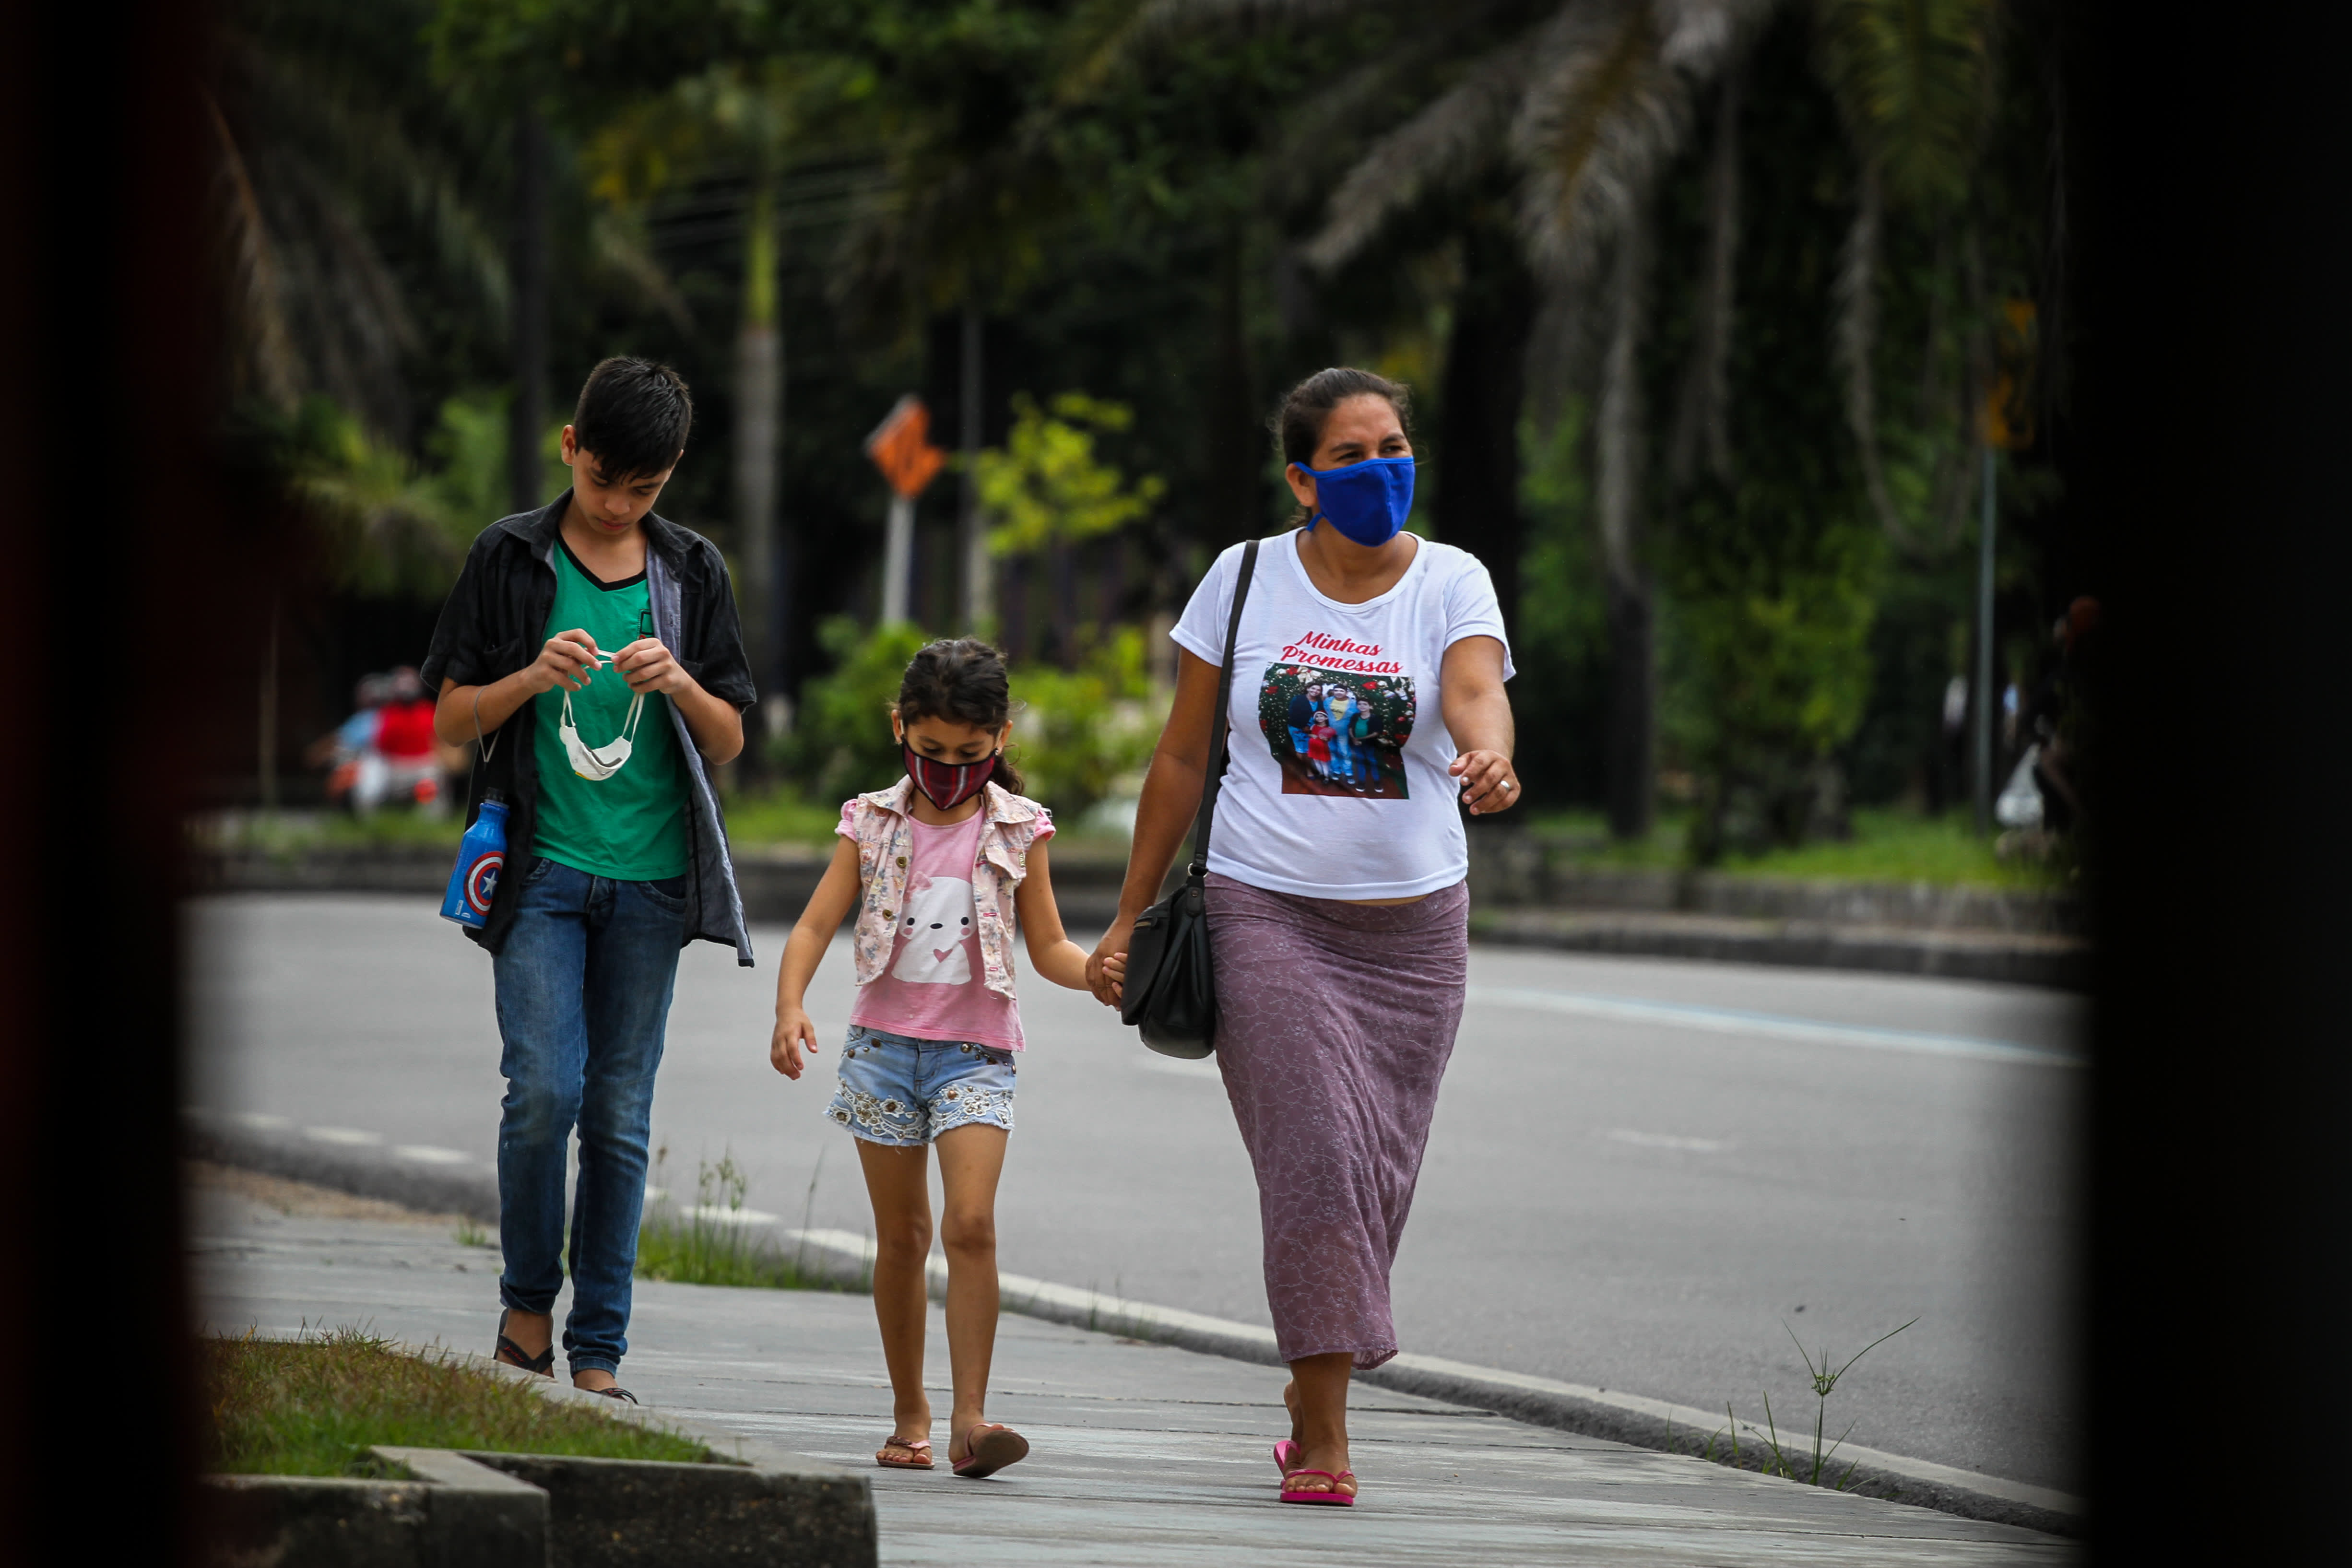 Brazil passes 1 million coronavirus cases with no end in sight